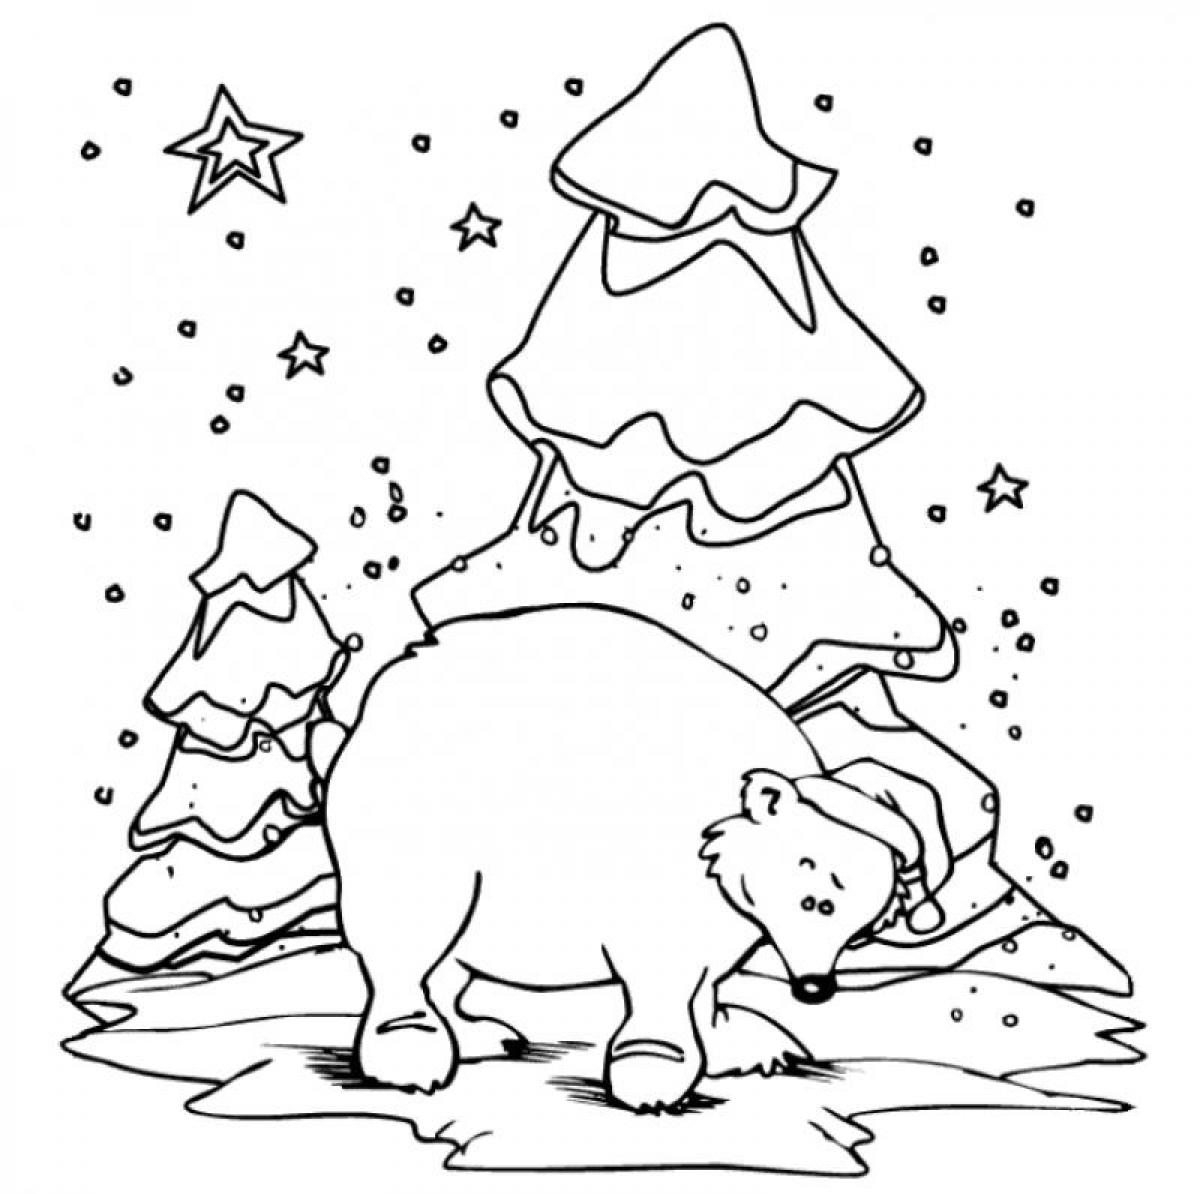 Coca Cola Polar Bear Coloring Pages At Getcolorings